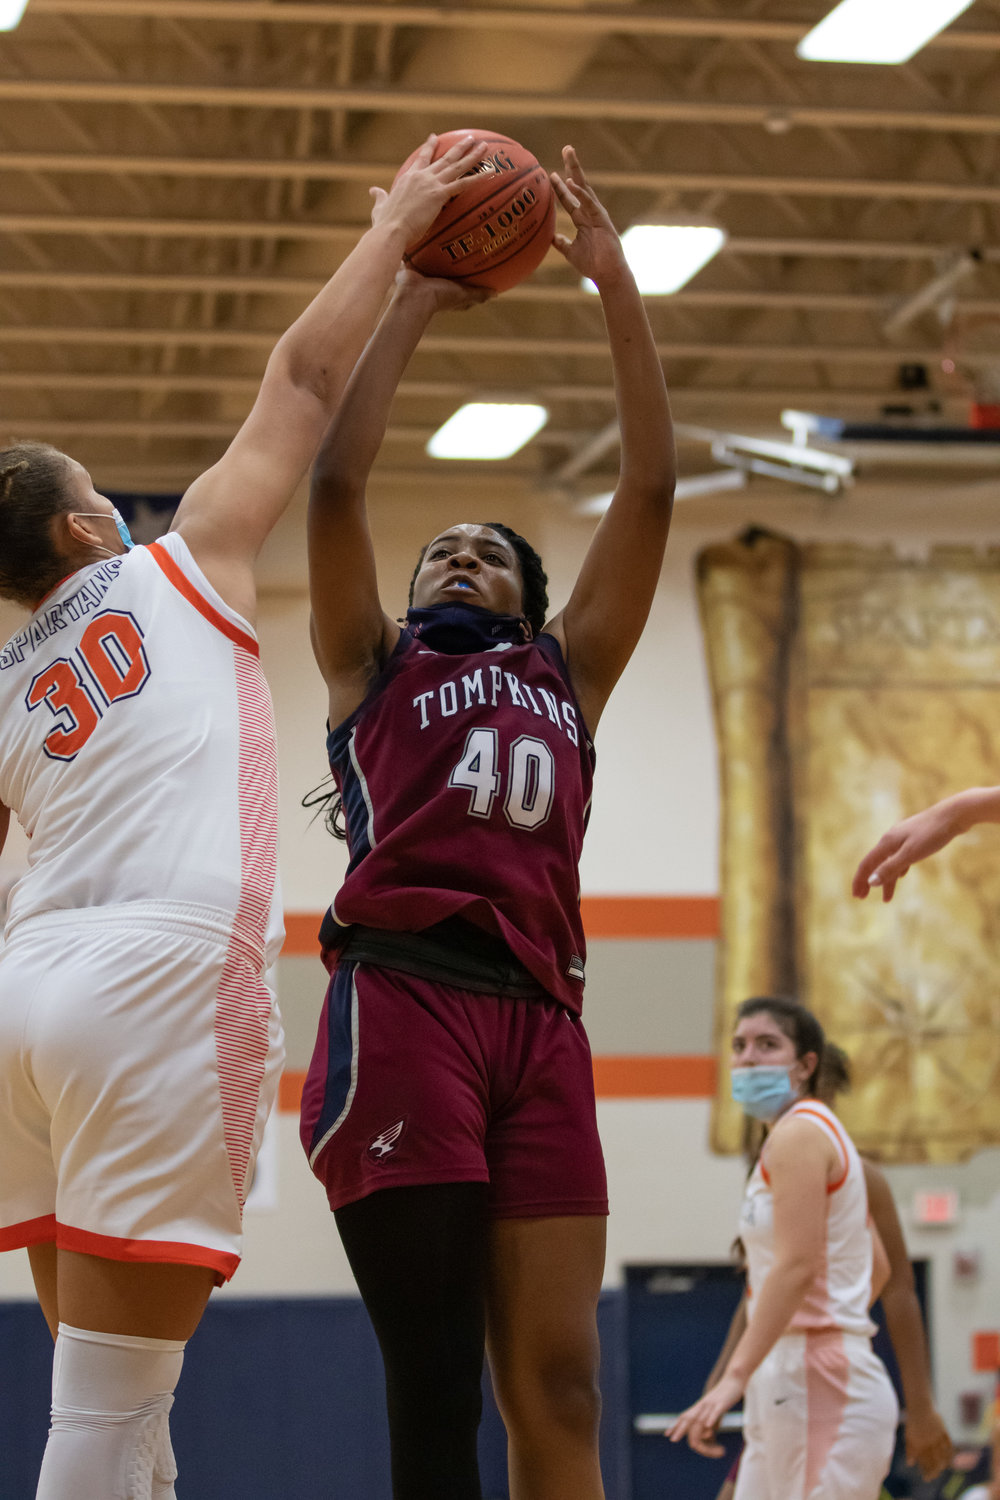 Seven Lakes freshman Justice Carlton blocks Tompkins senior Ashley Ngene's shot during their game Tuesday, Dec. 29, at Seven Lakes High.